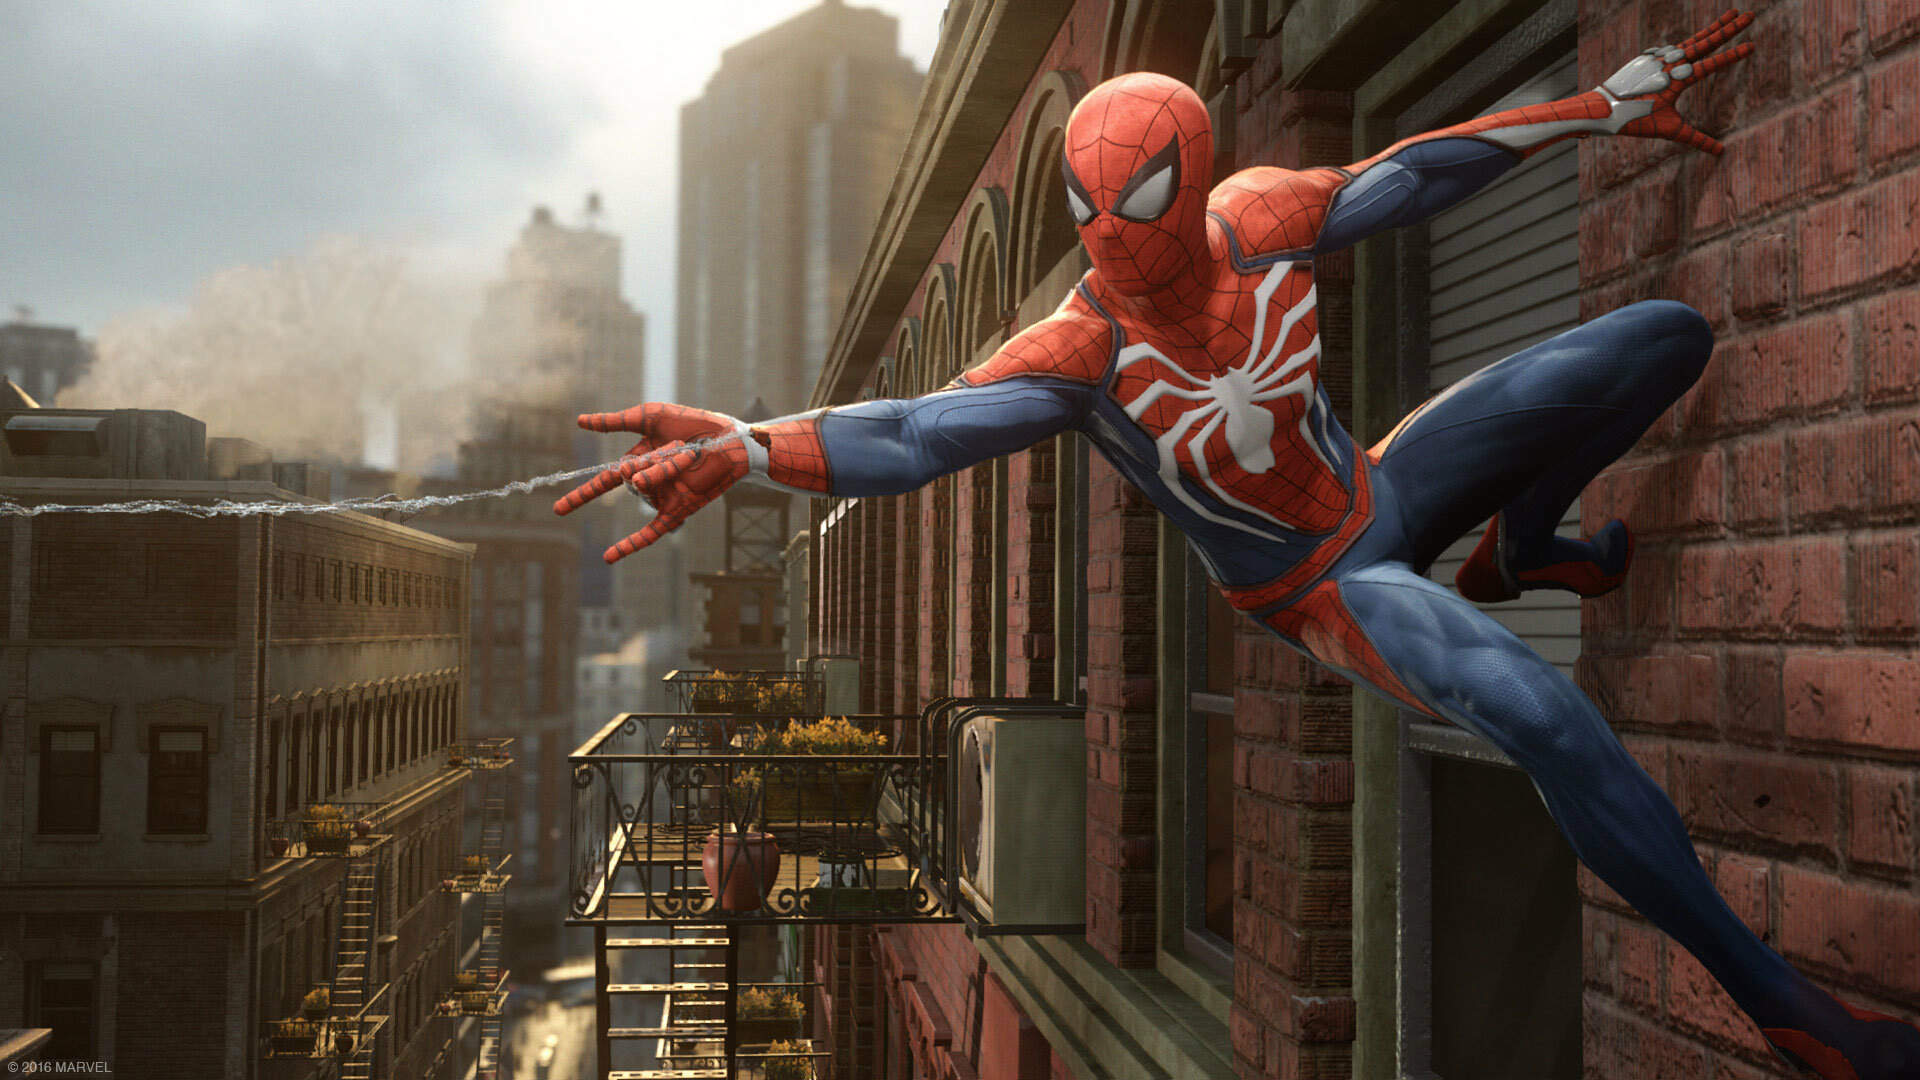 Spider-Man PS4 Marriage Proposal Backfires, Dev Offers to Patch it Out